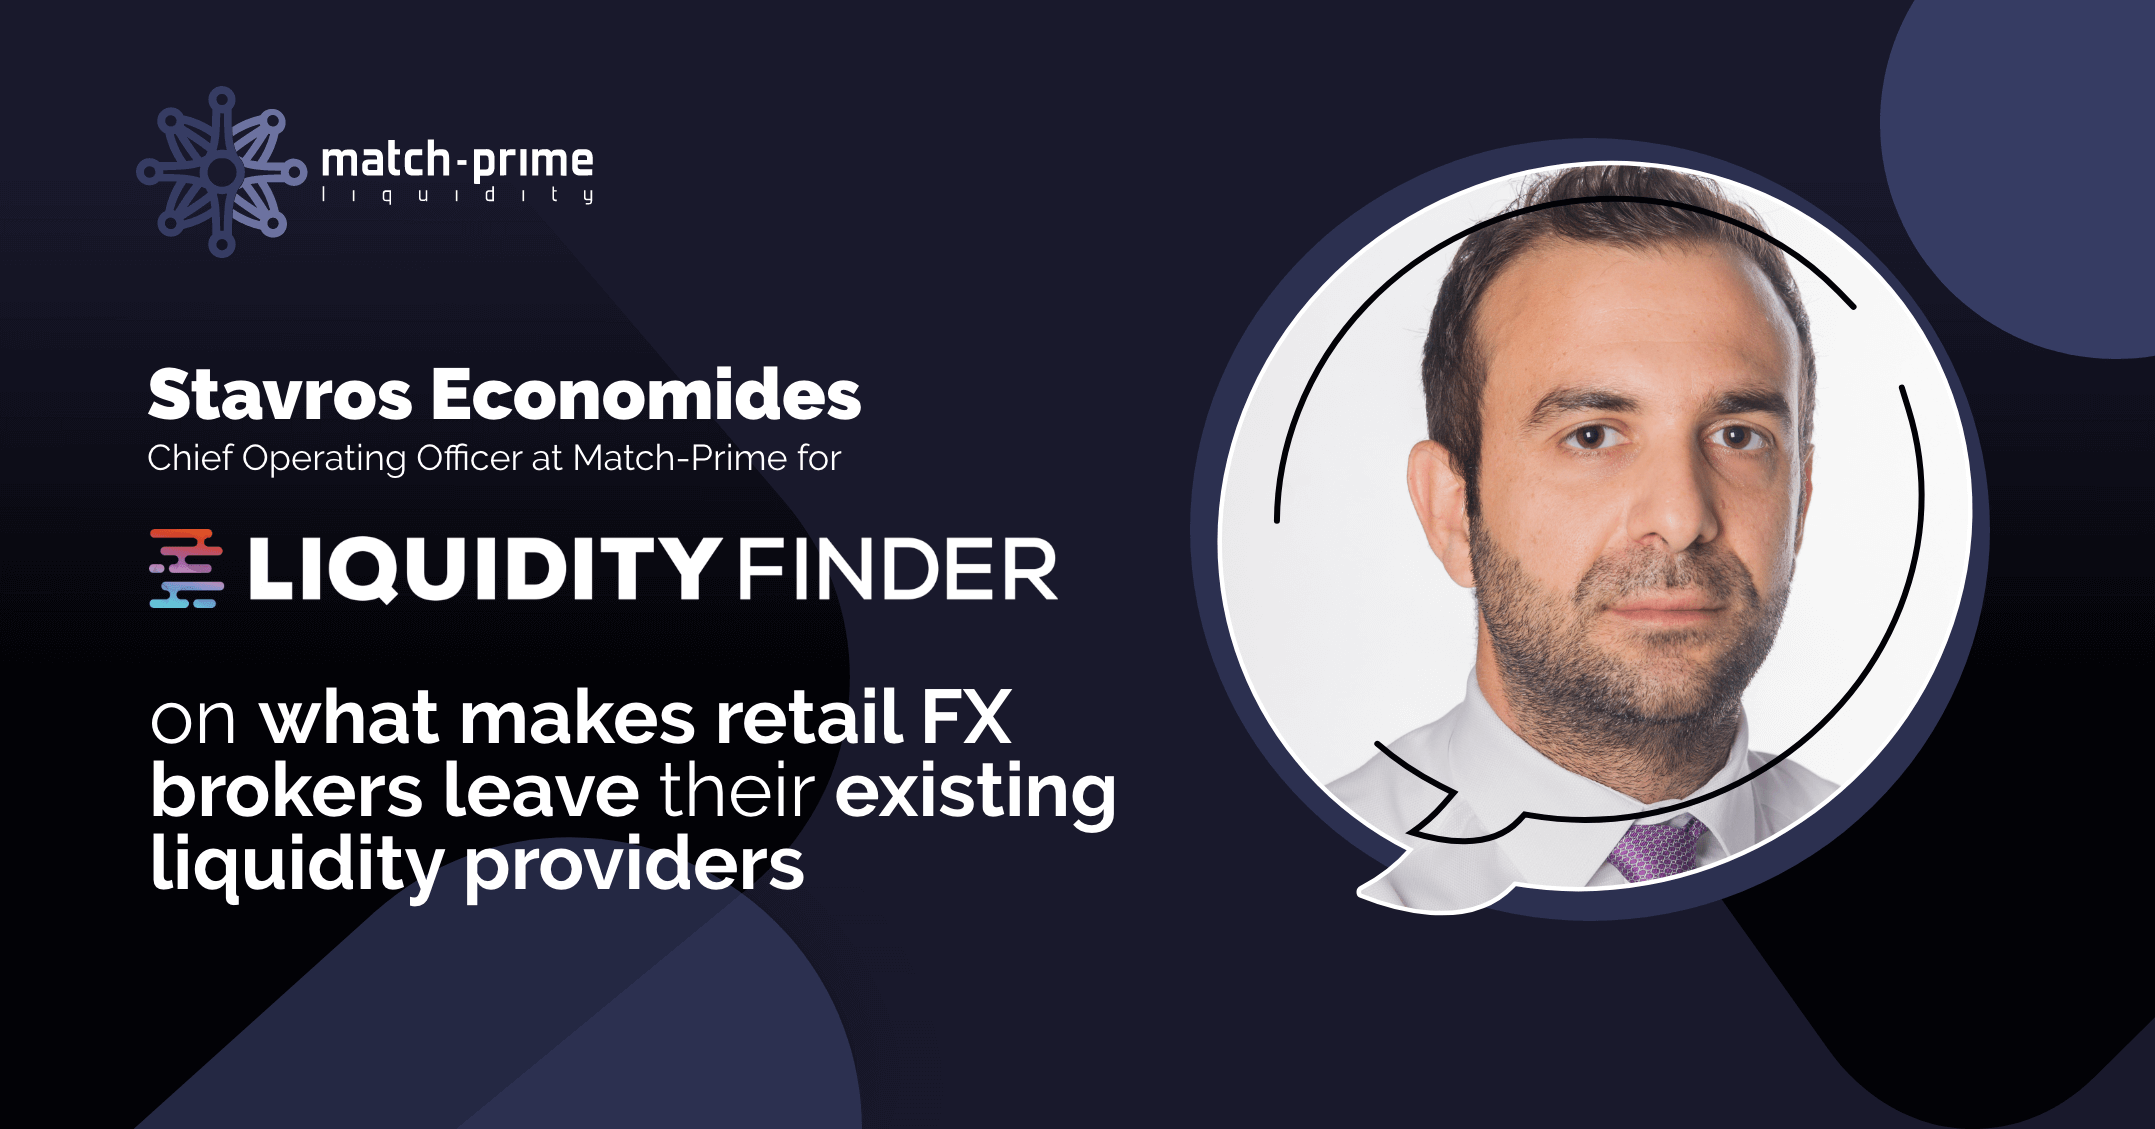 Read the interview, Stavros Economides, the COO of Match-Prime gave to Sam Low of LiquidityFinder.com